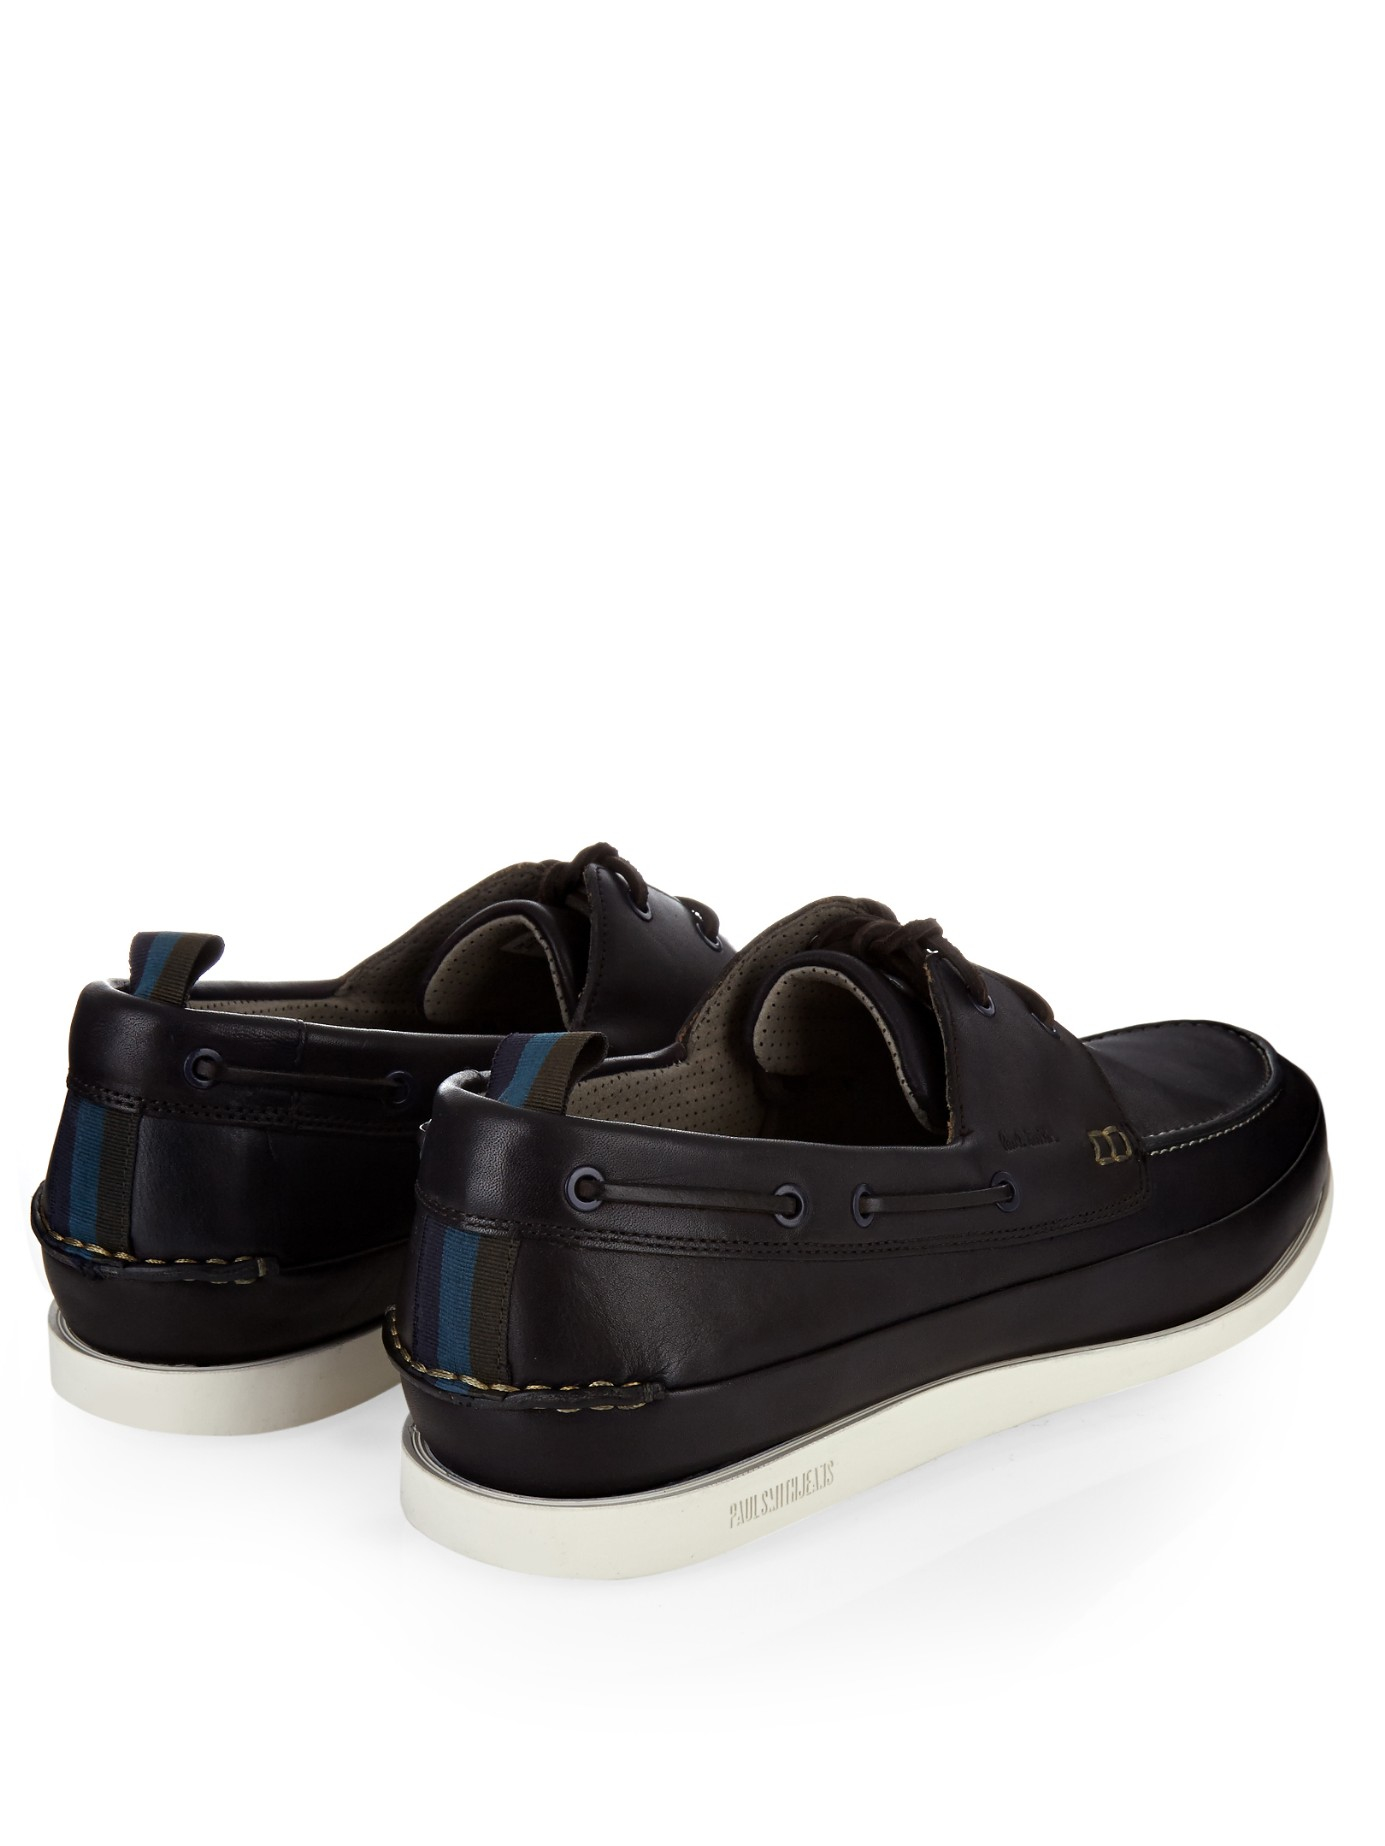 paul smith branca leather deck shoes in blue for lyst